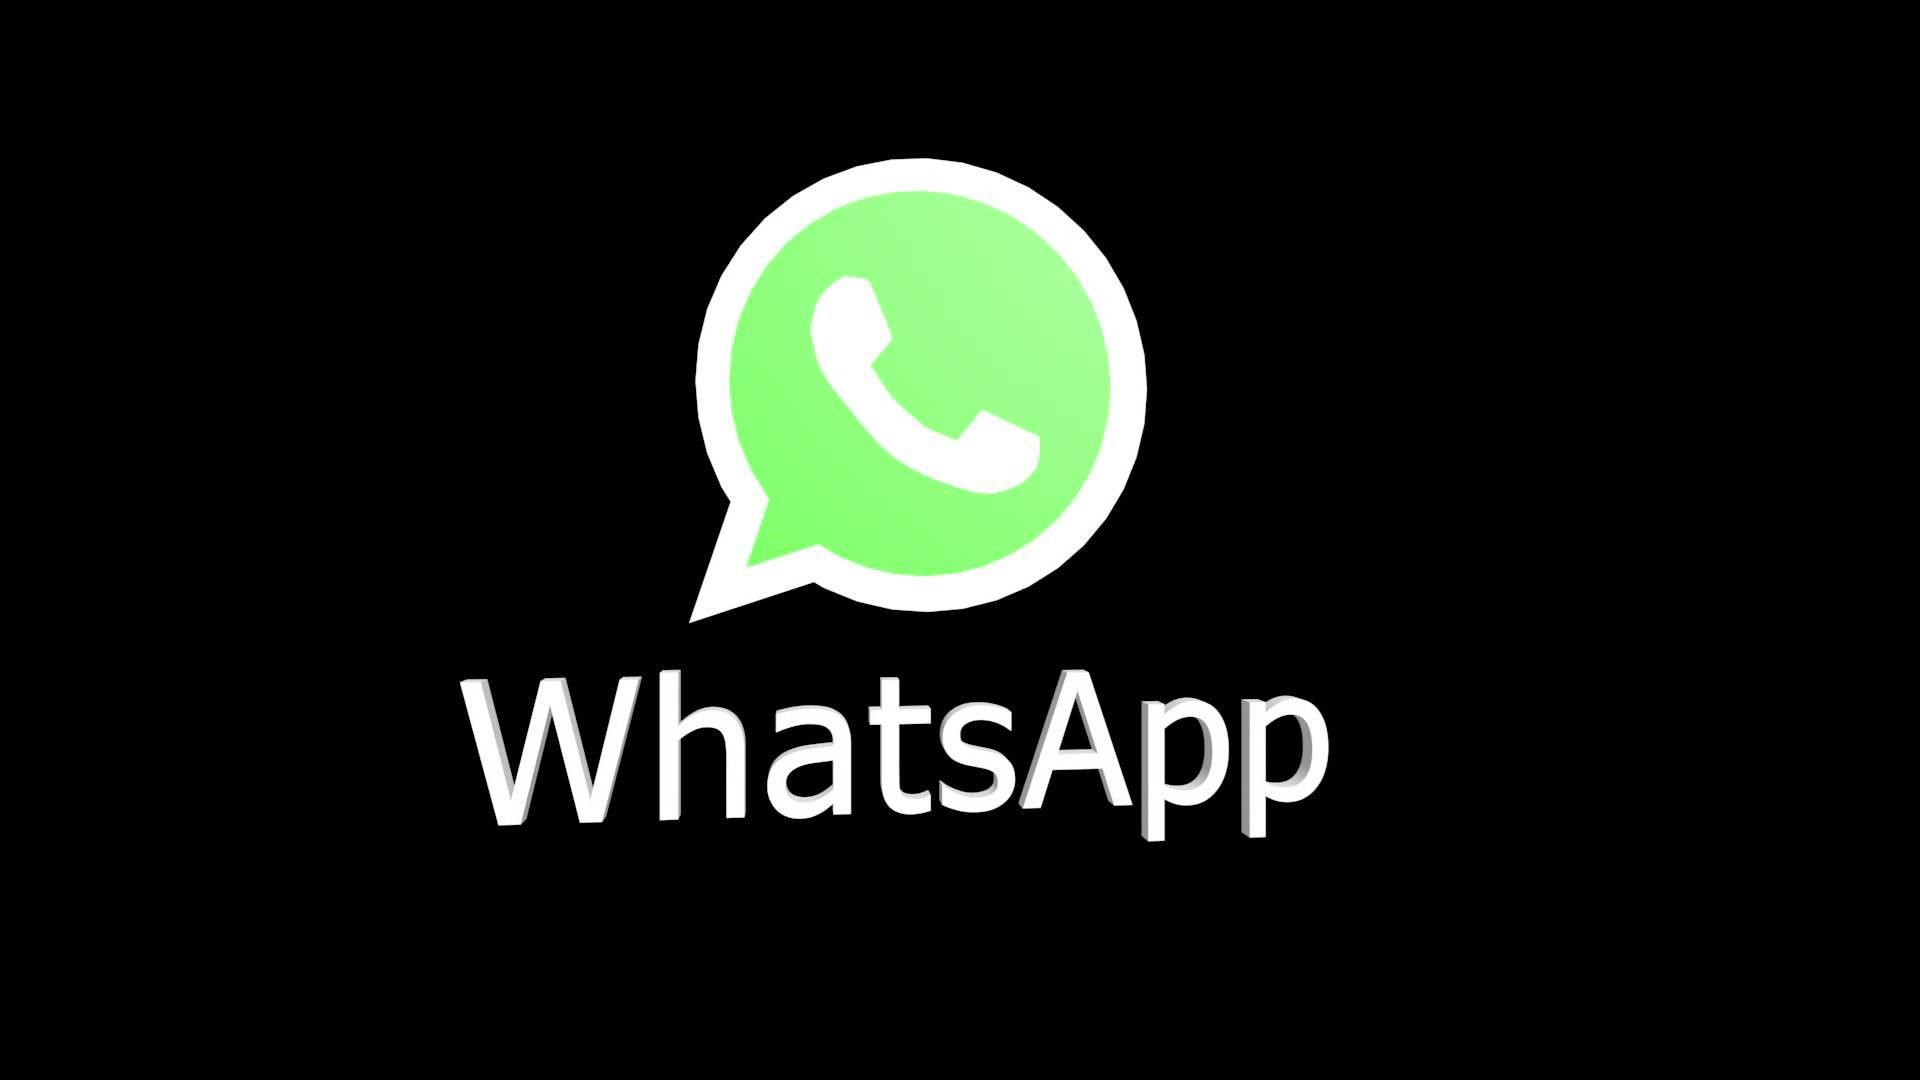 WhatsApp спидометры